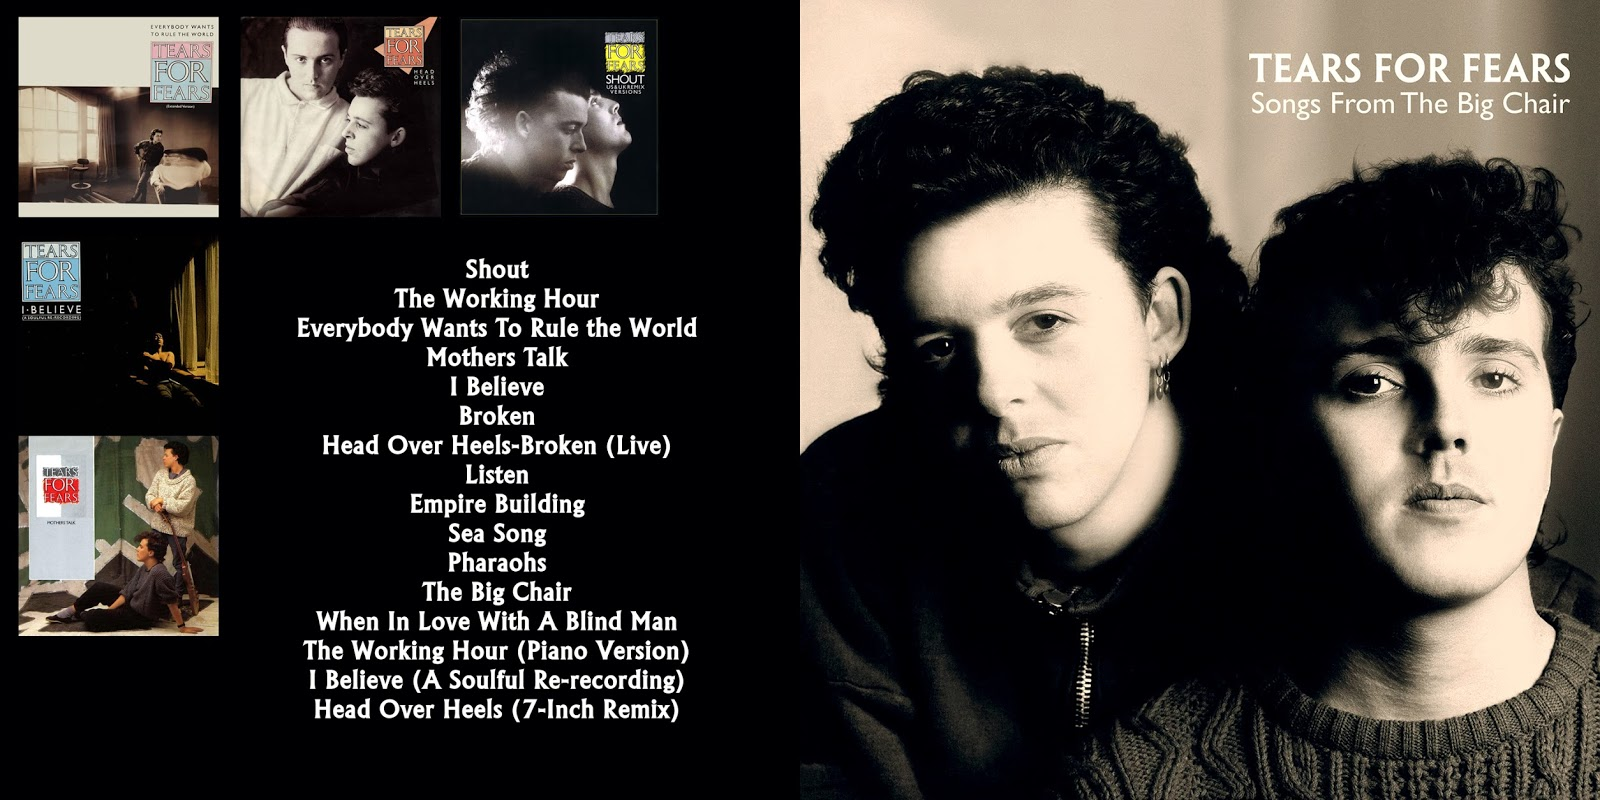 Tears For Fears - Songs From the Big Chair - 1985 & All the Air In My Lungs: Tears For Fears - Songs From the Big Chair ...